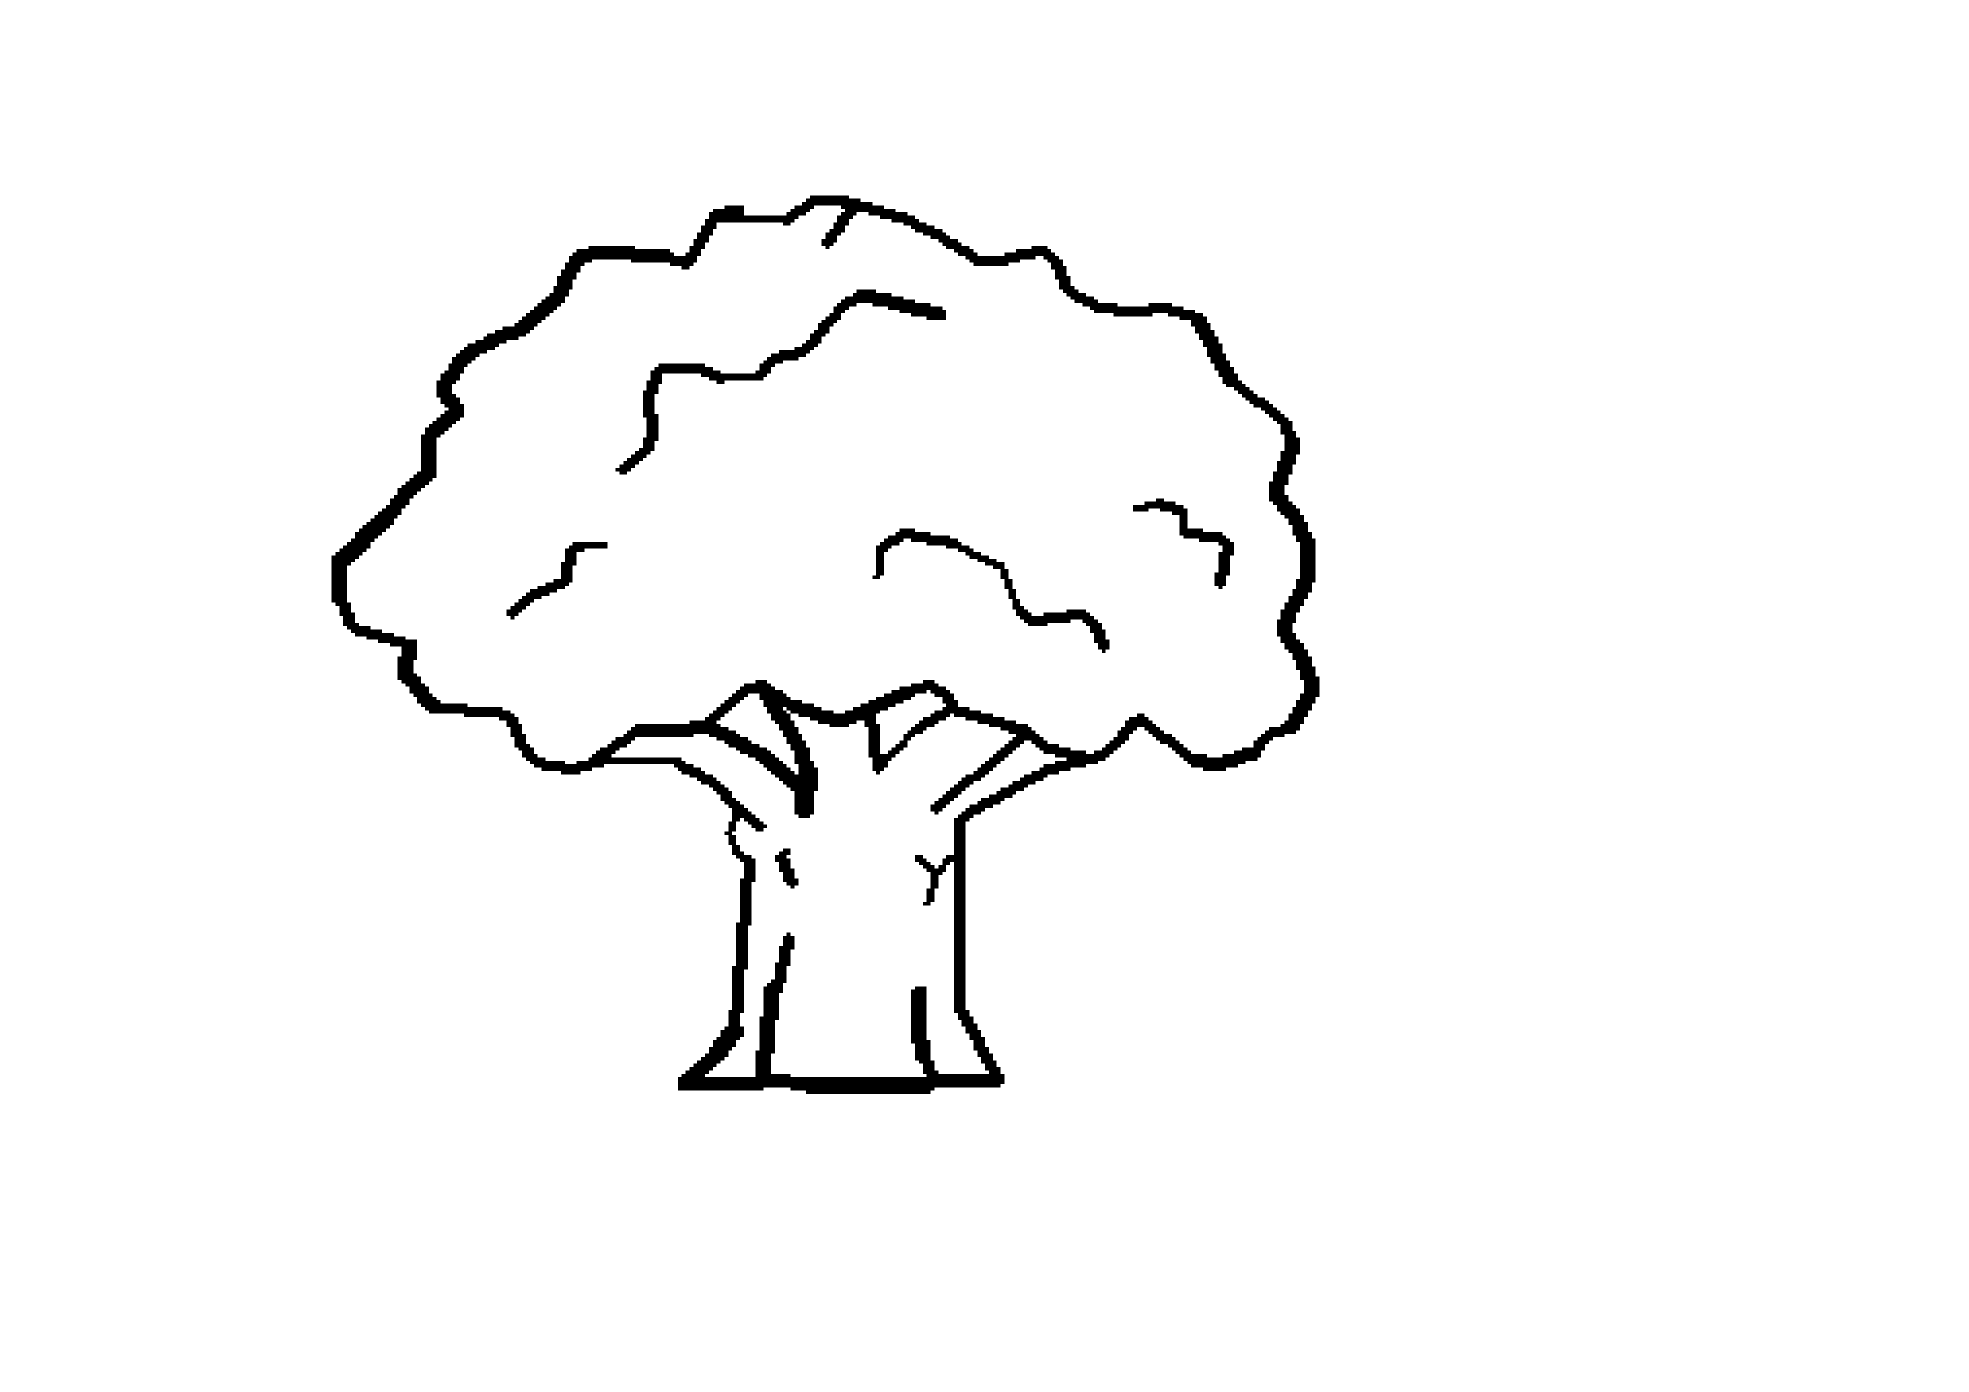 Line Drawing In Computer Graphics : Line drawing of a tree clipart best